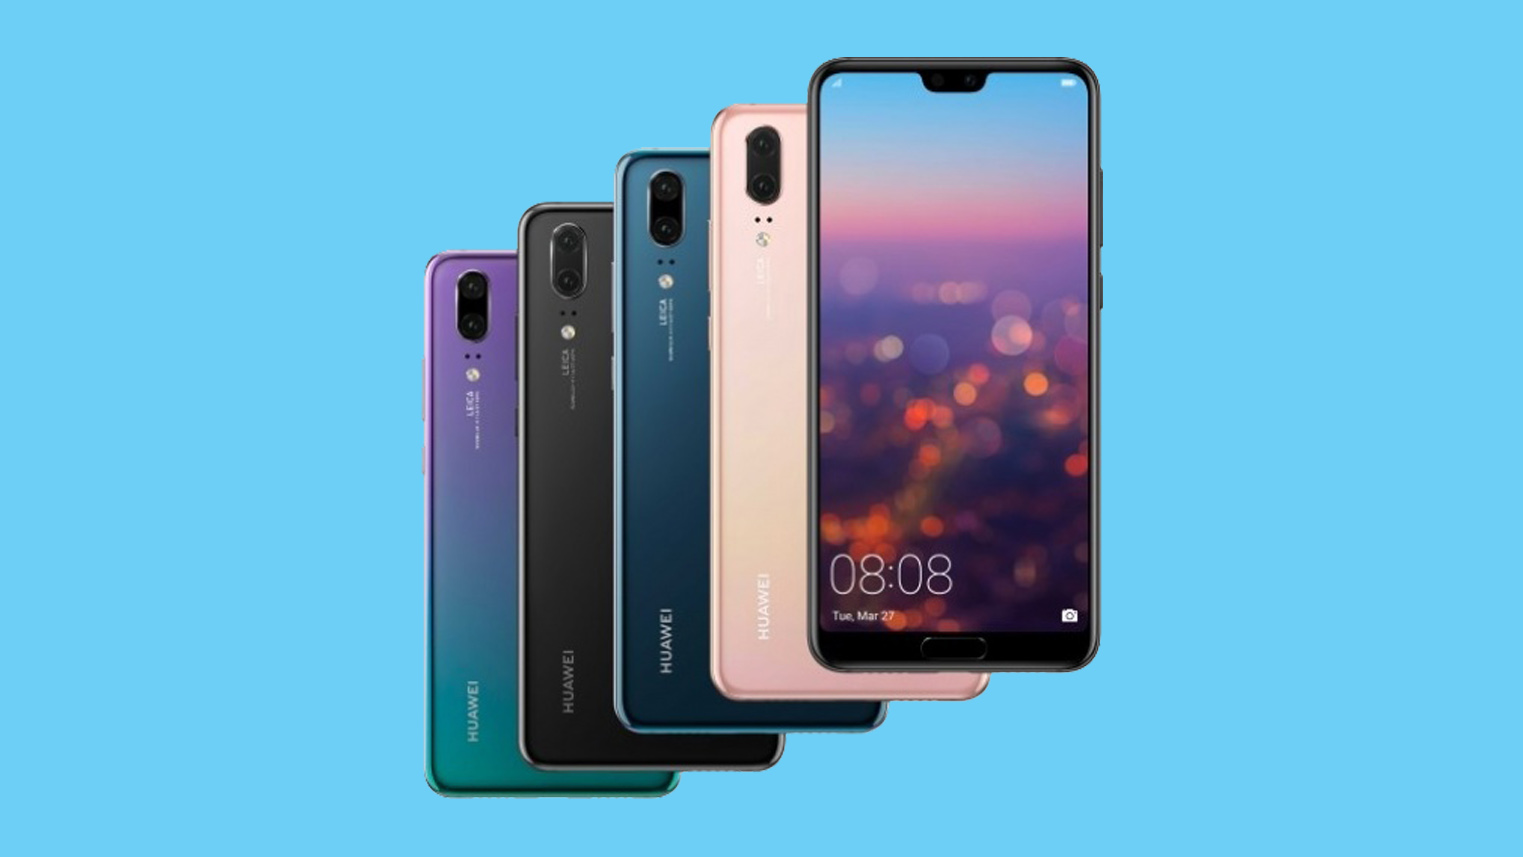 Huawei P20 officially launched in Nepal